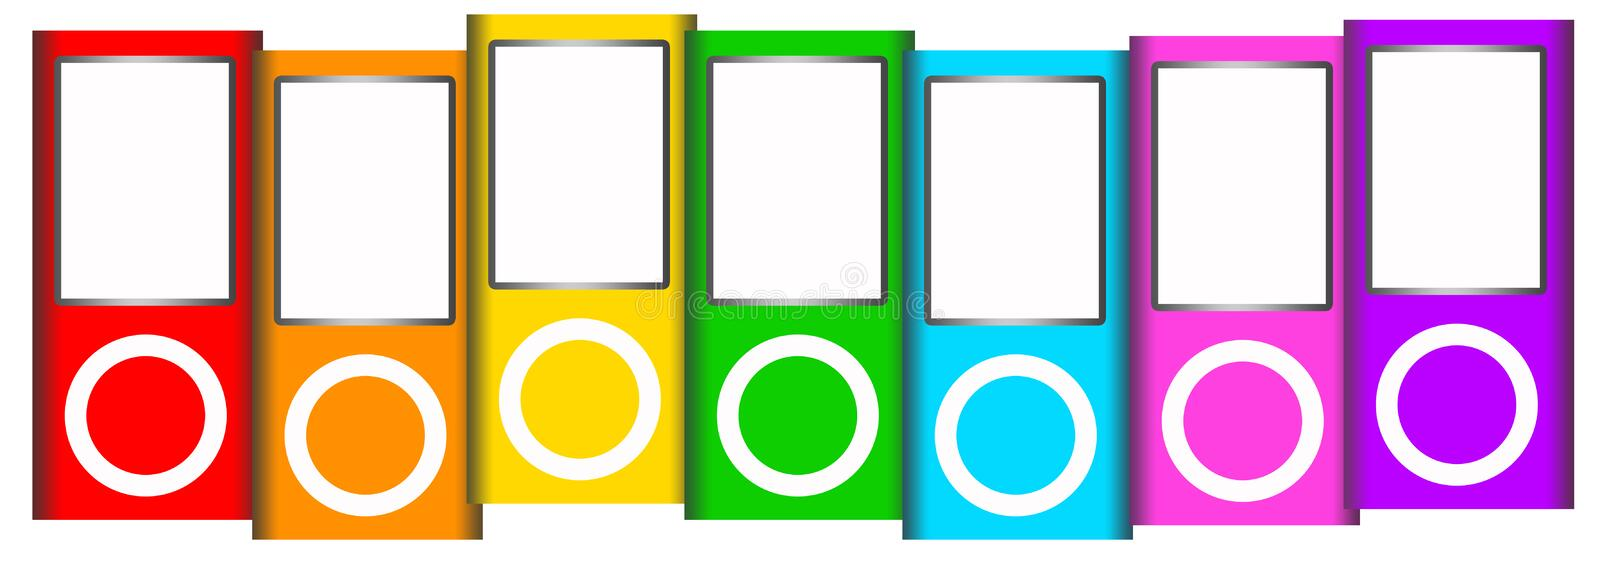 Ipod. Apple iPods in different colors